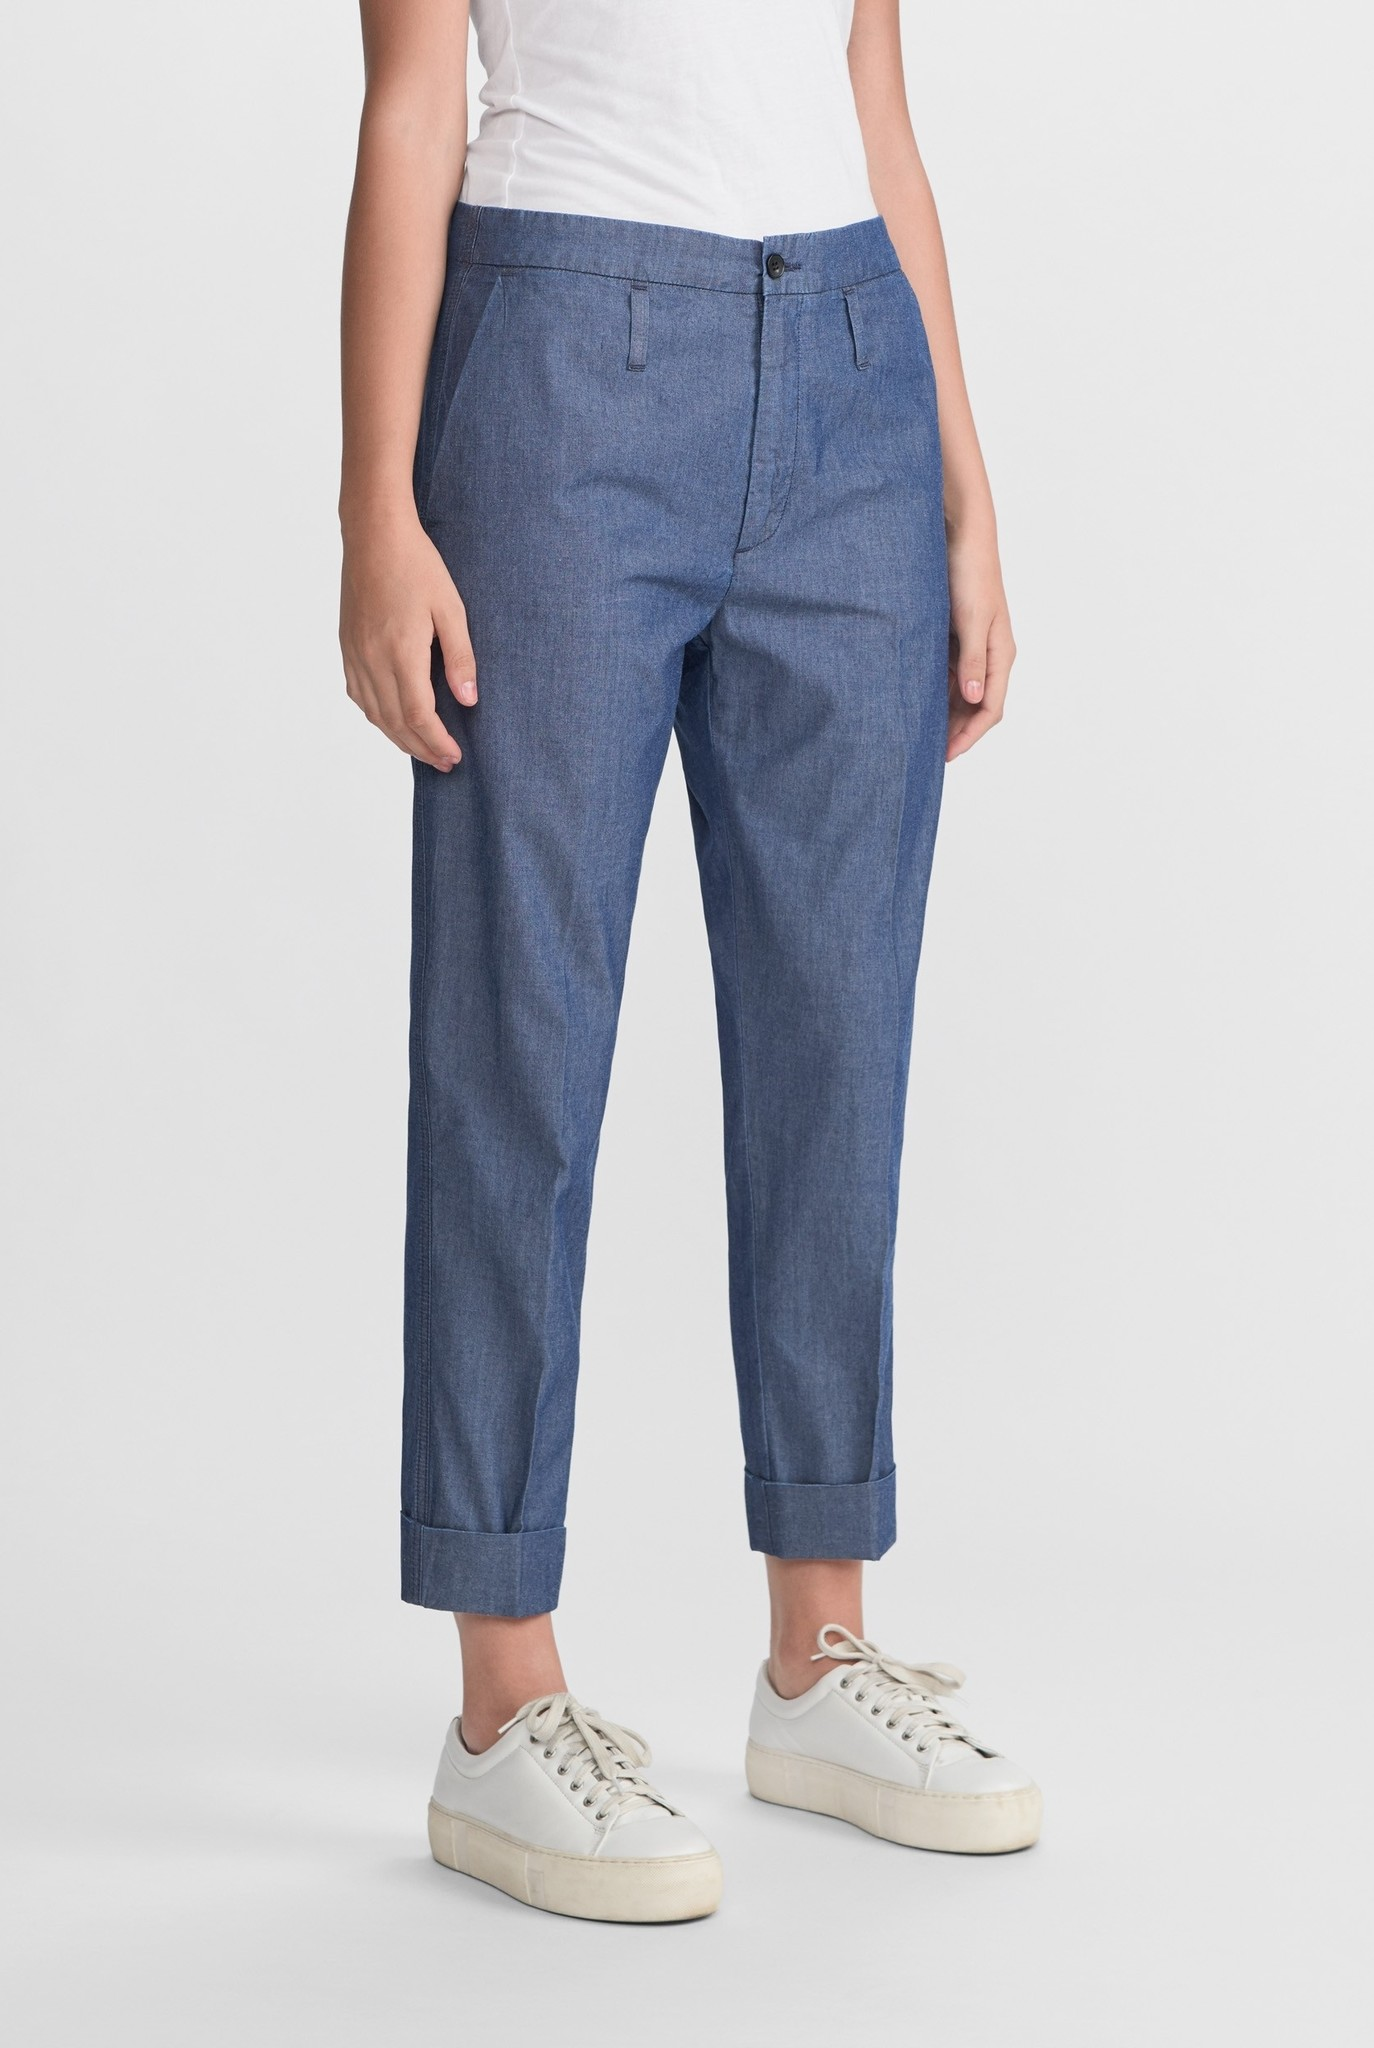 Law trouser Blue indigo